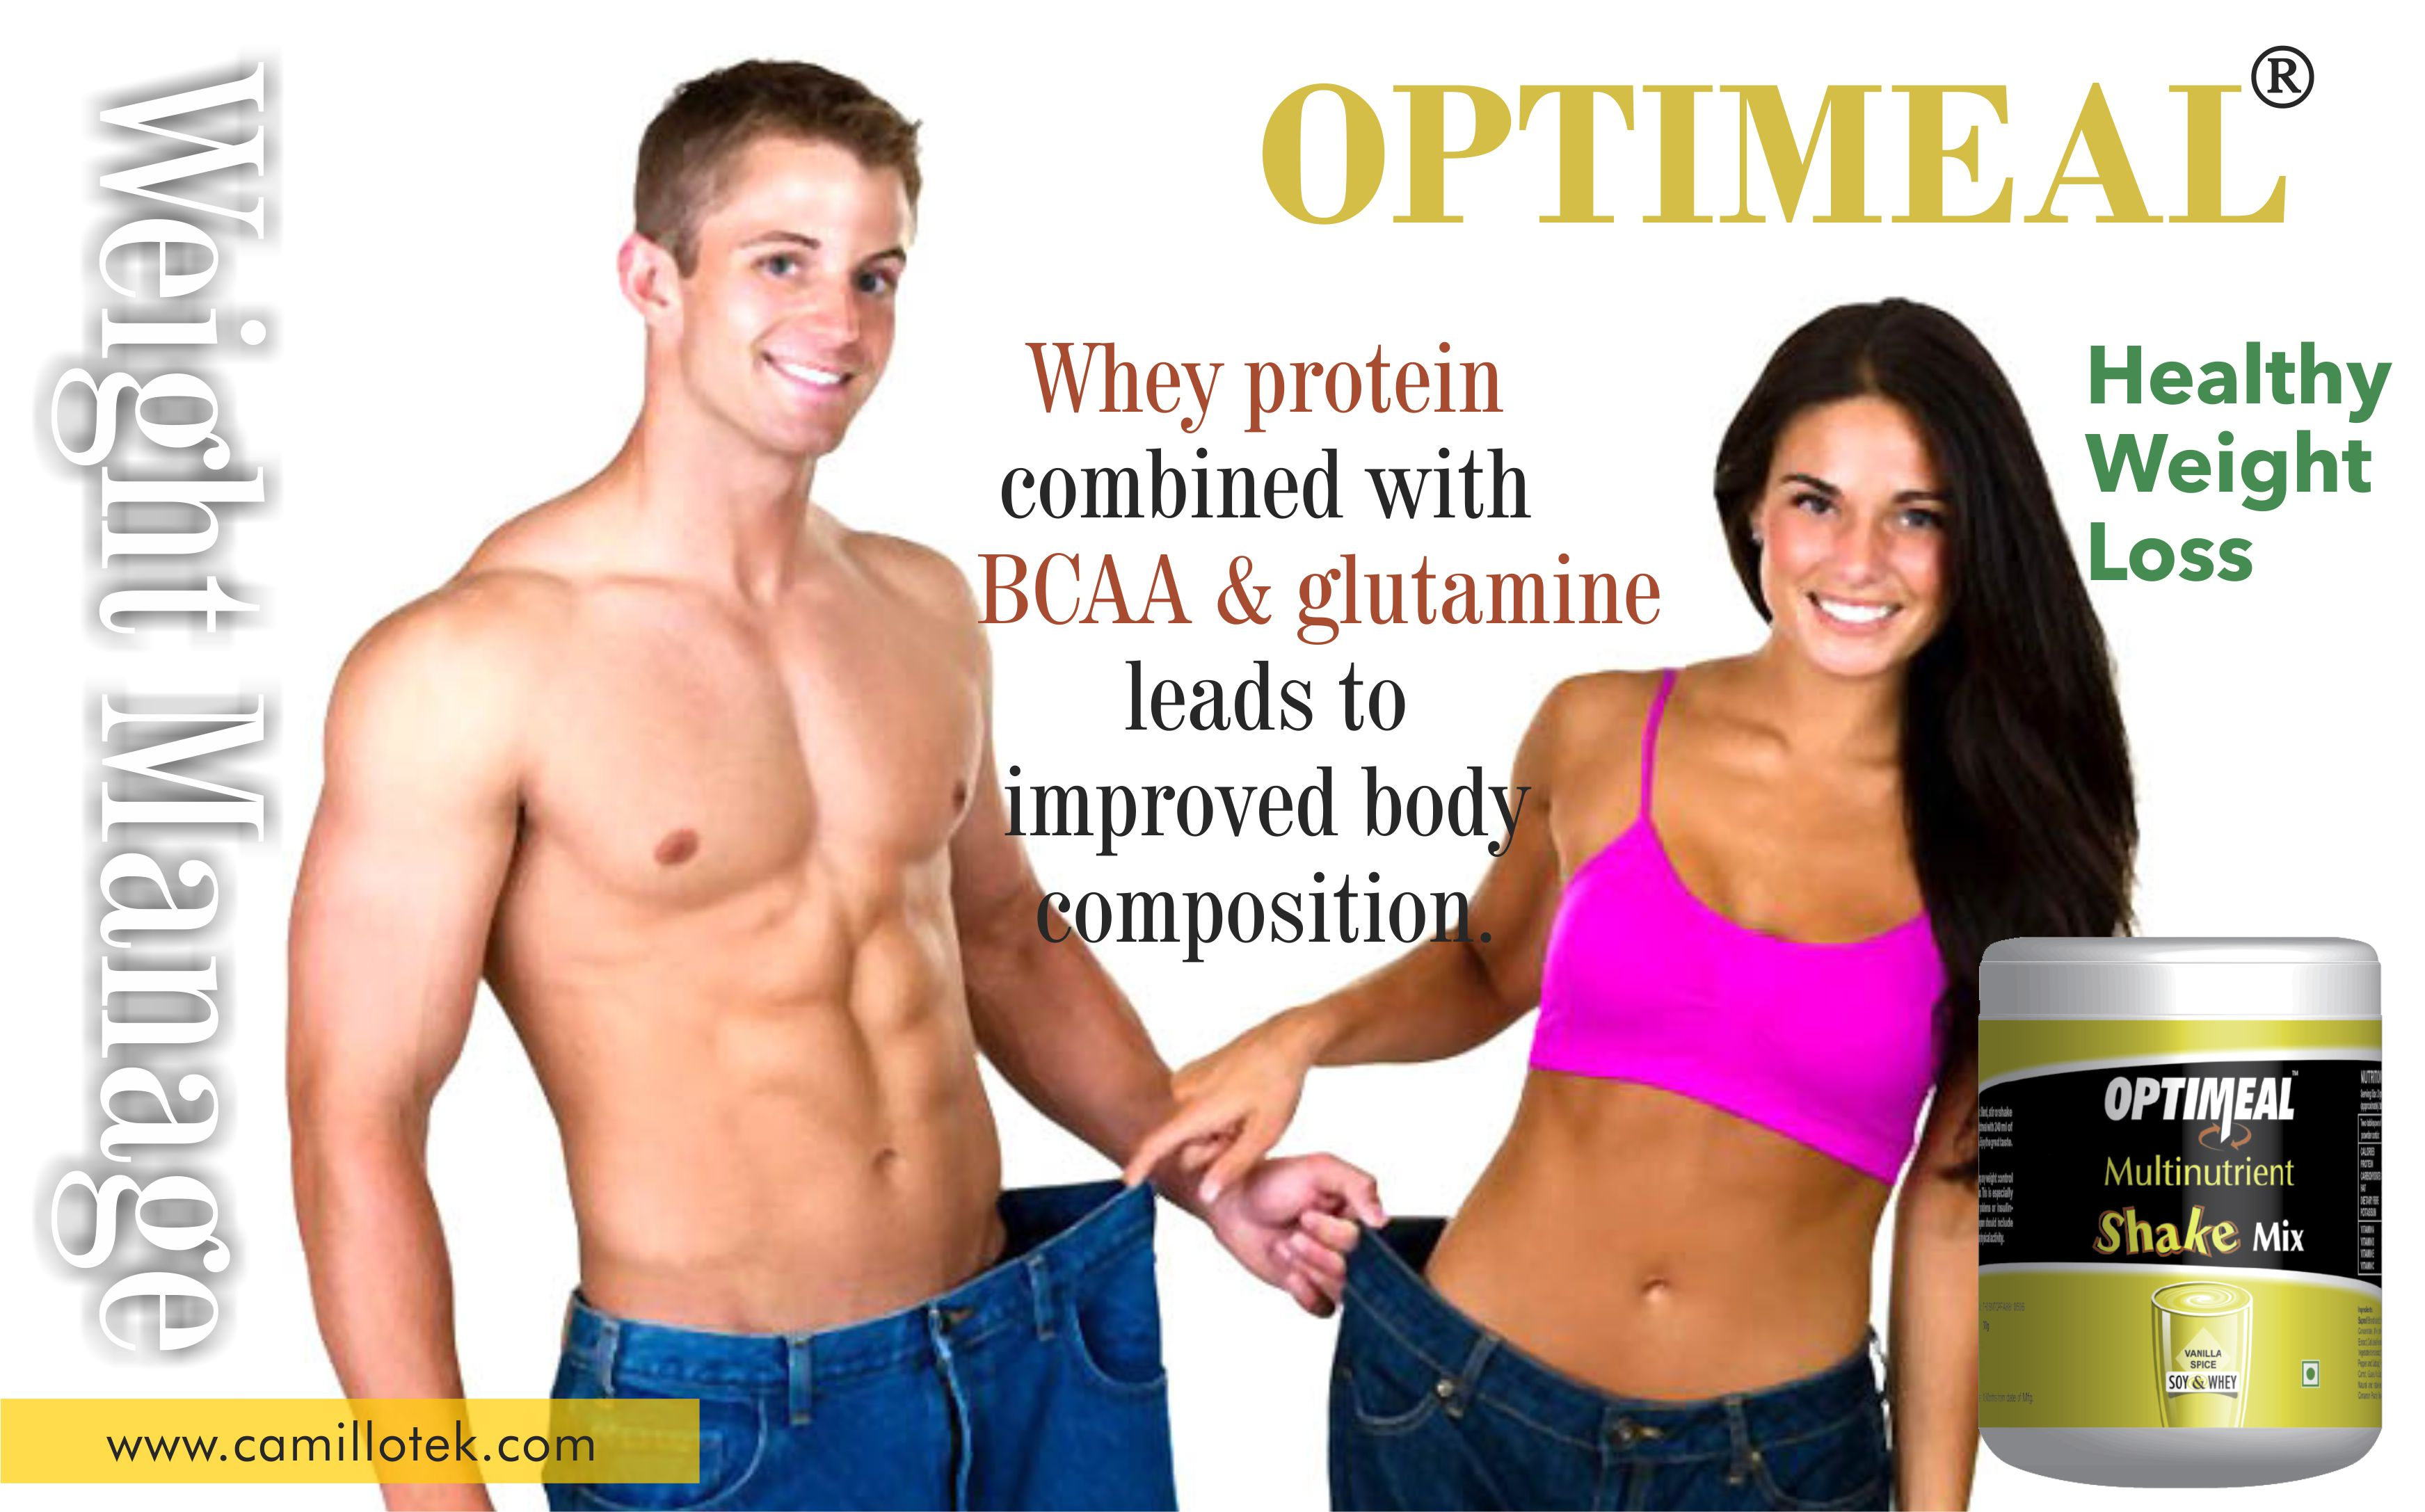 Optimeal used as Weight Loss Combo, Fast Fat Burner, Meal Replacer, meal replacement shake, meal replacement shake to manage weight.  Optimeal - Meal replacement shakes for weight loss : Soy protein in Optimeal which reduced risk of heart disease.  Optimeal contains soy protein with naturally occurring isoflavones may be linked to lower blood pressure. Whey protein combined with BCAA and glutamine leads to improved body composition.